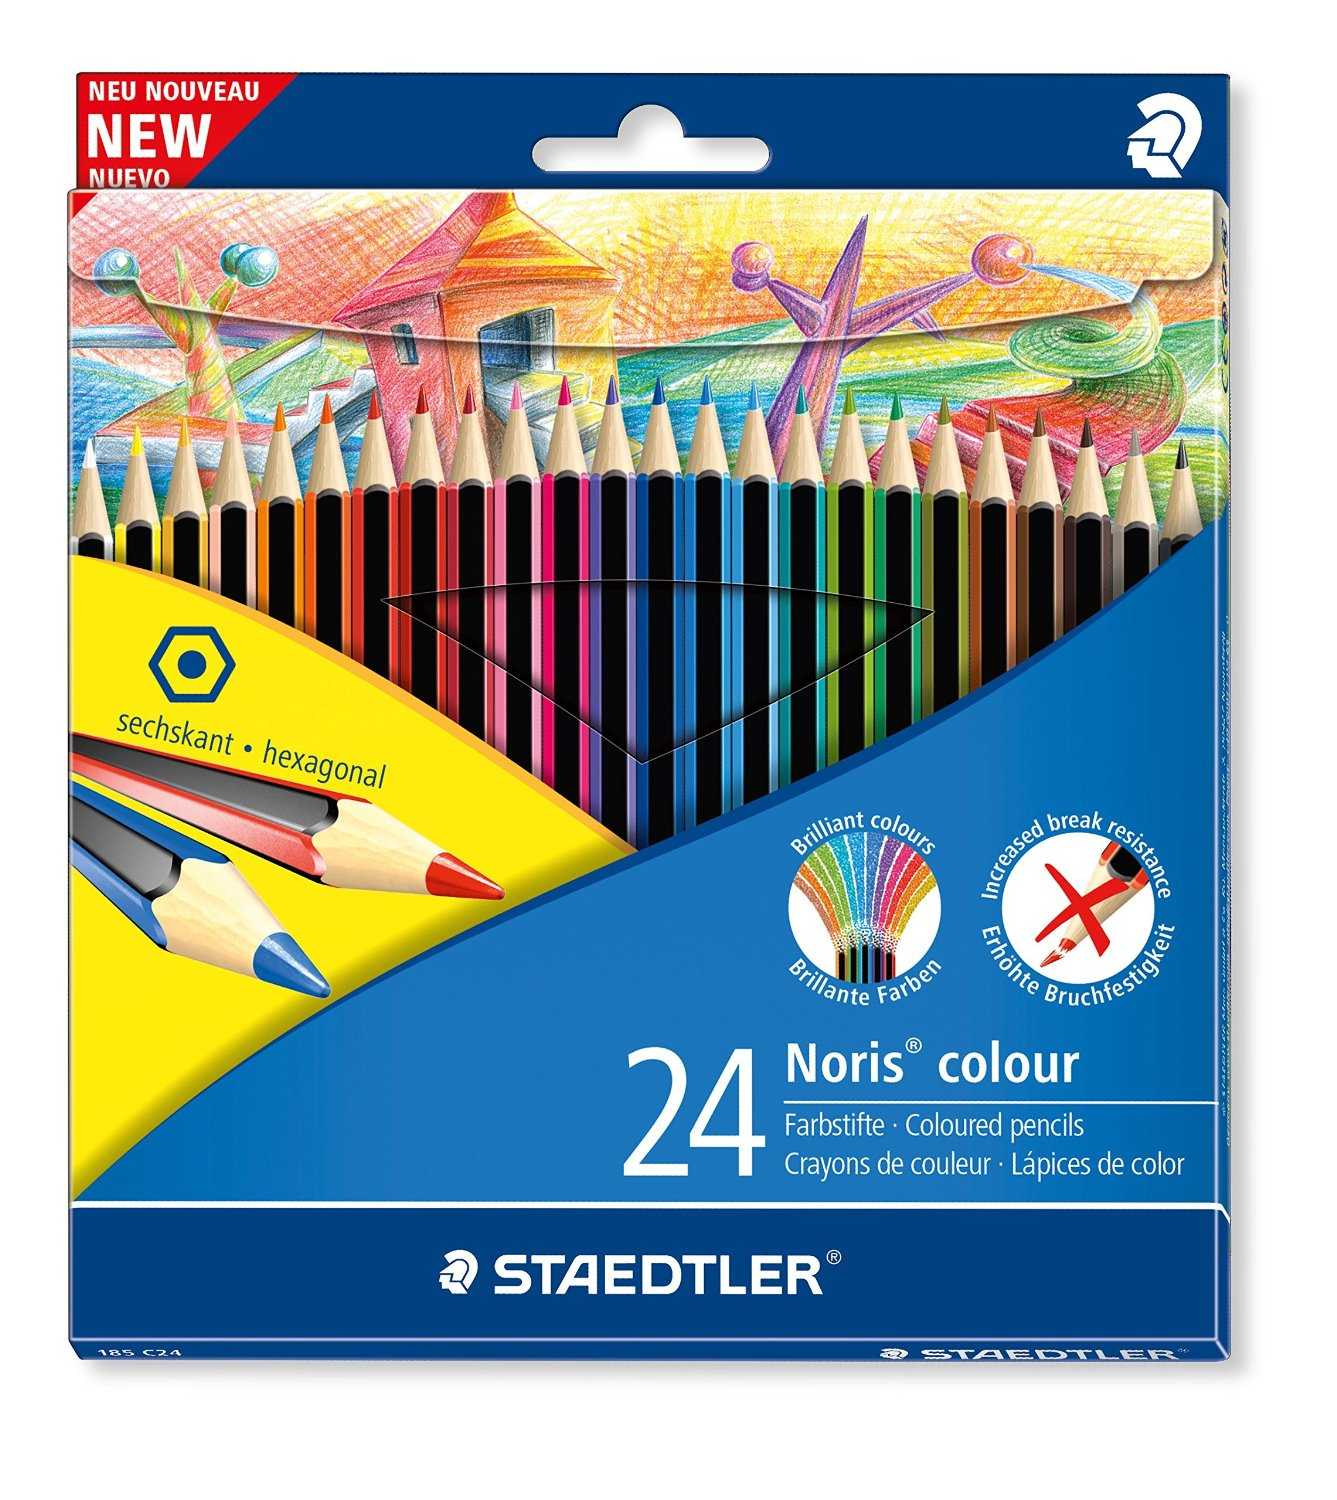 Staedtler Pencils Sketching Colour Pens Triplus Color Fibre Tip Pen 323 20 Magenta Noris Colouring Assorted Pack Of 24 185c24